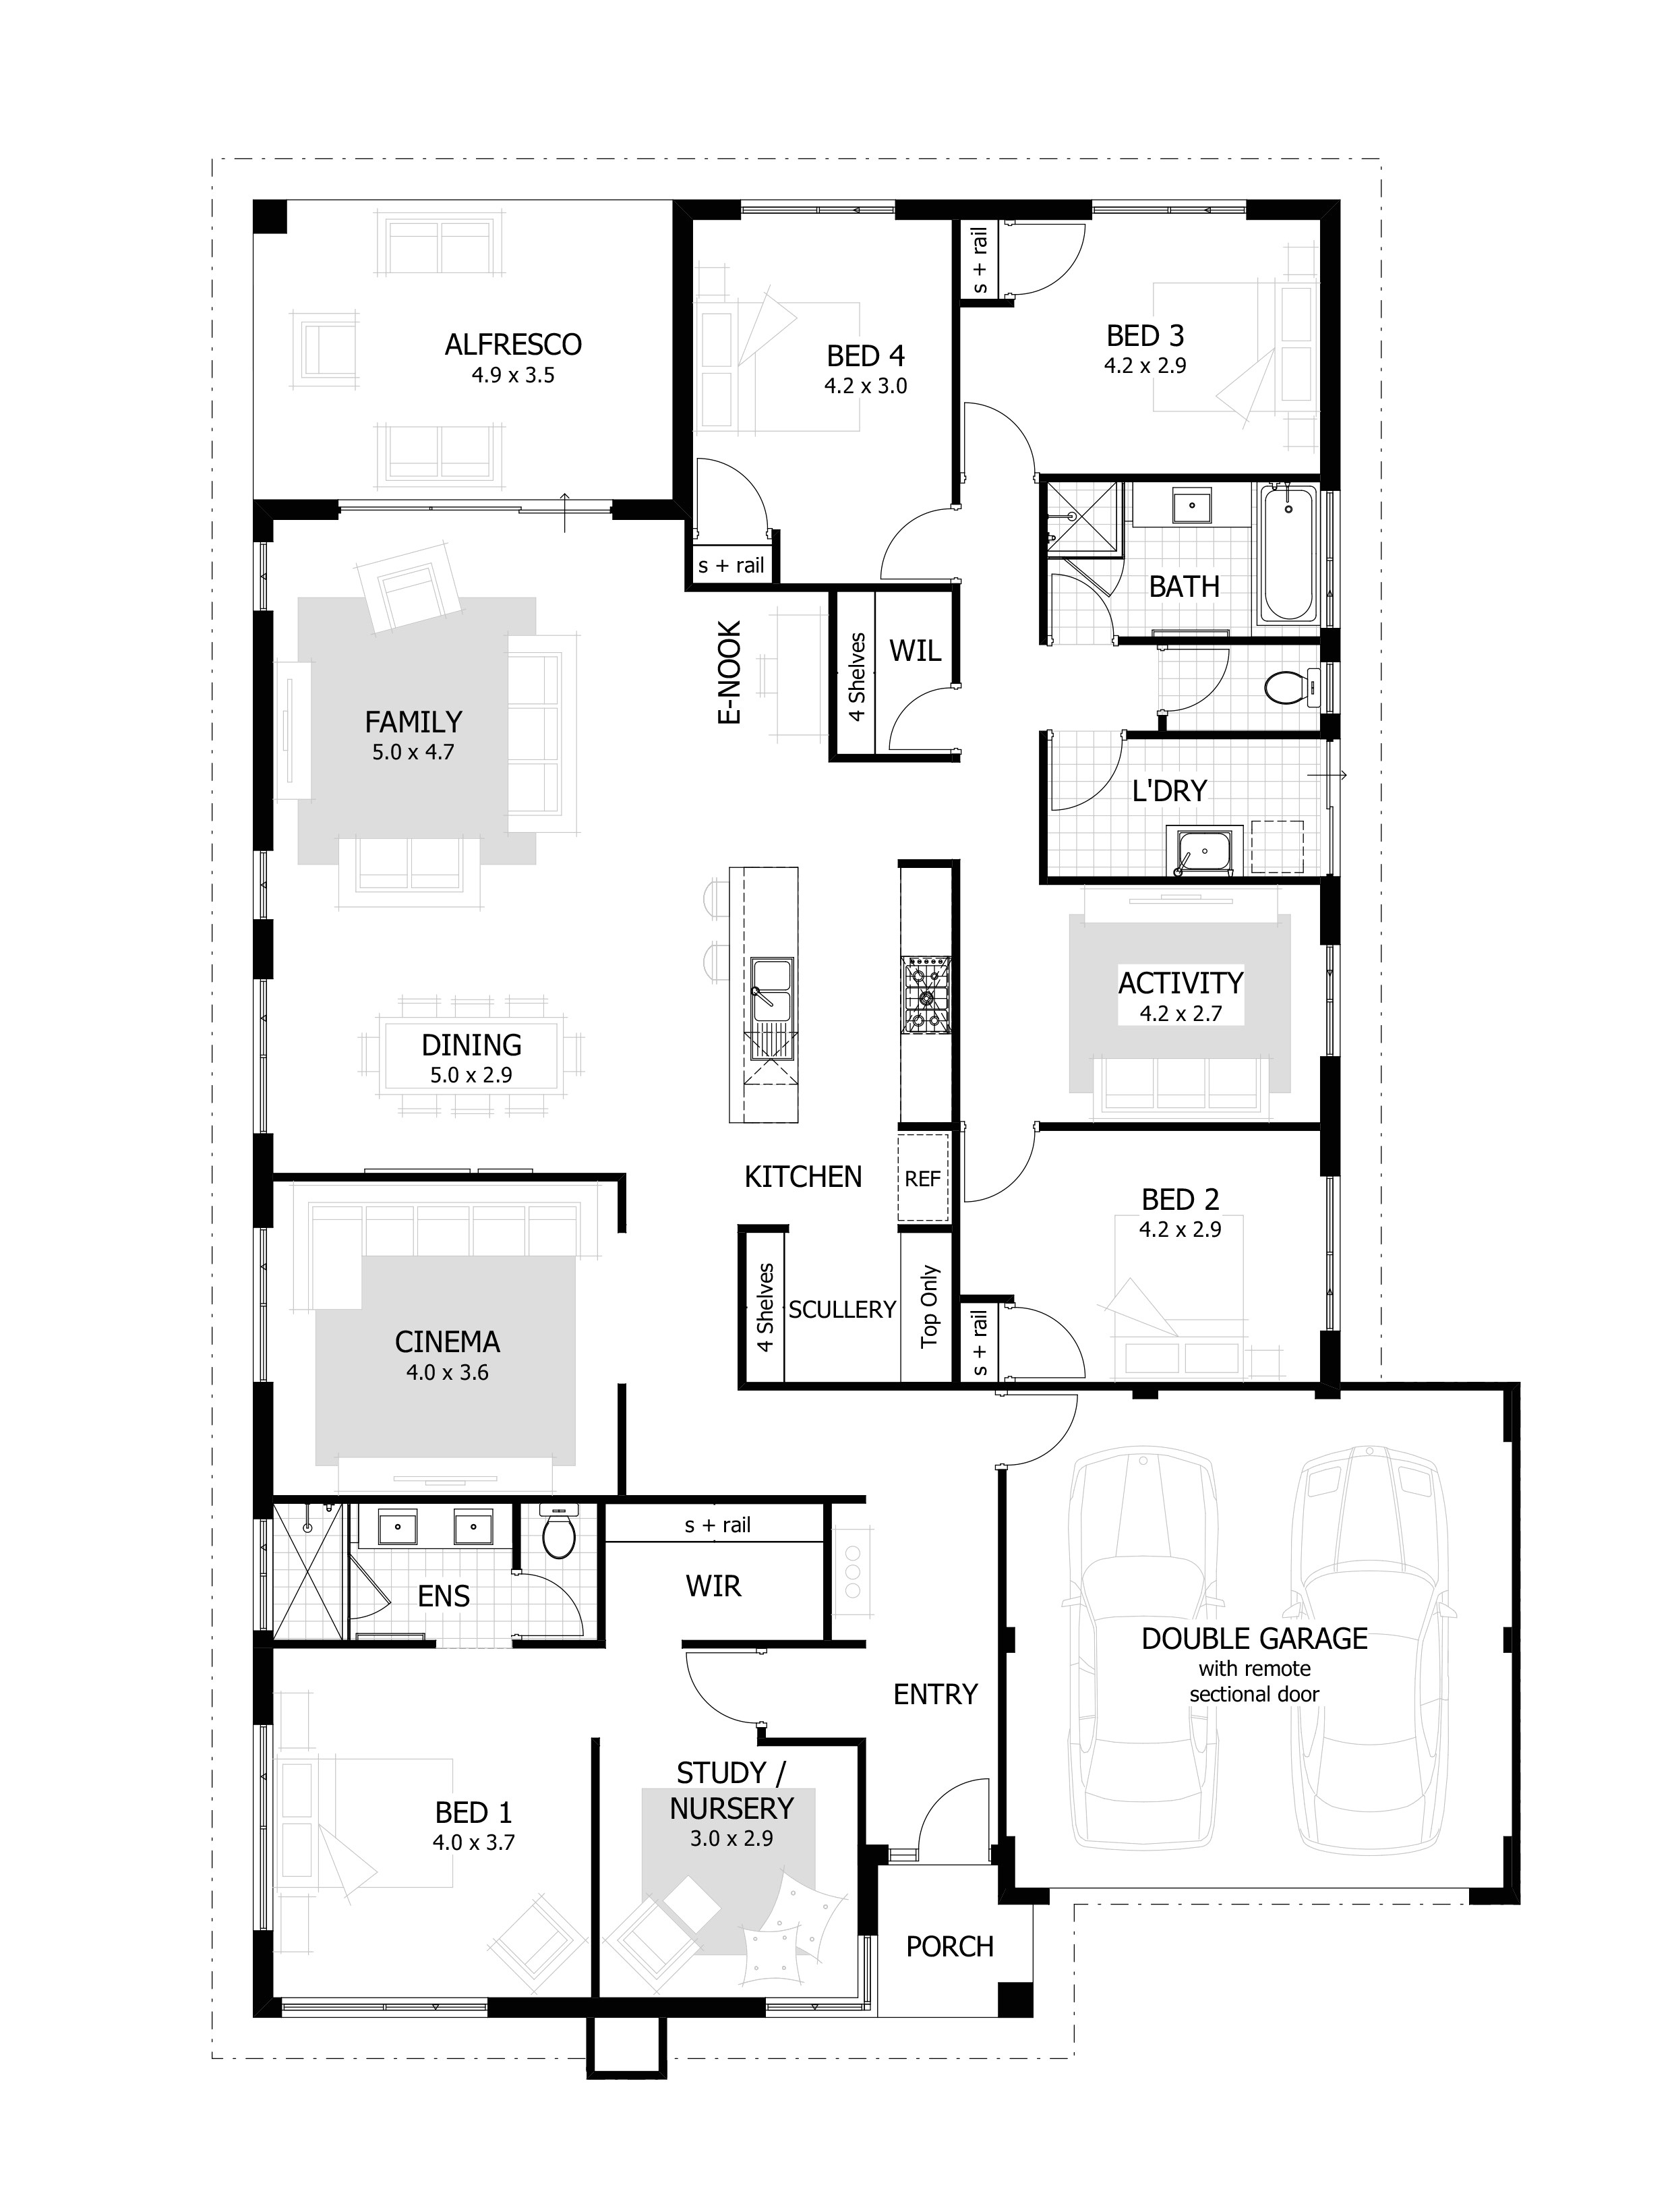 Home Plans Usa Two Storey House Plans Usa Luxury 6 Bedroom 1 Story House